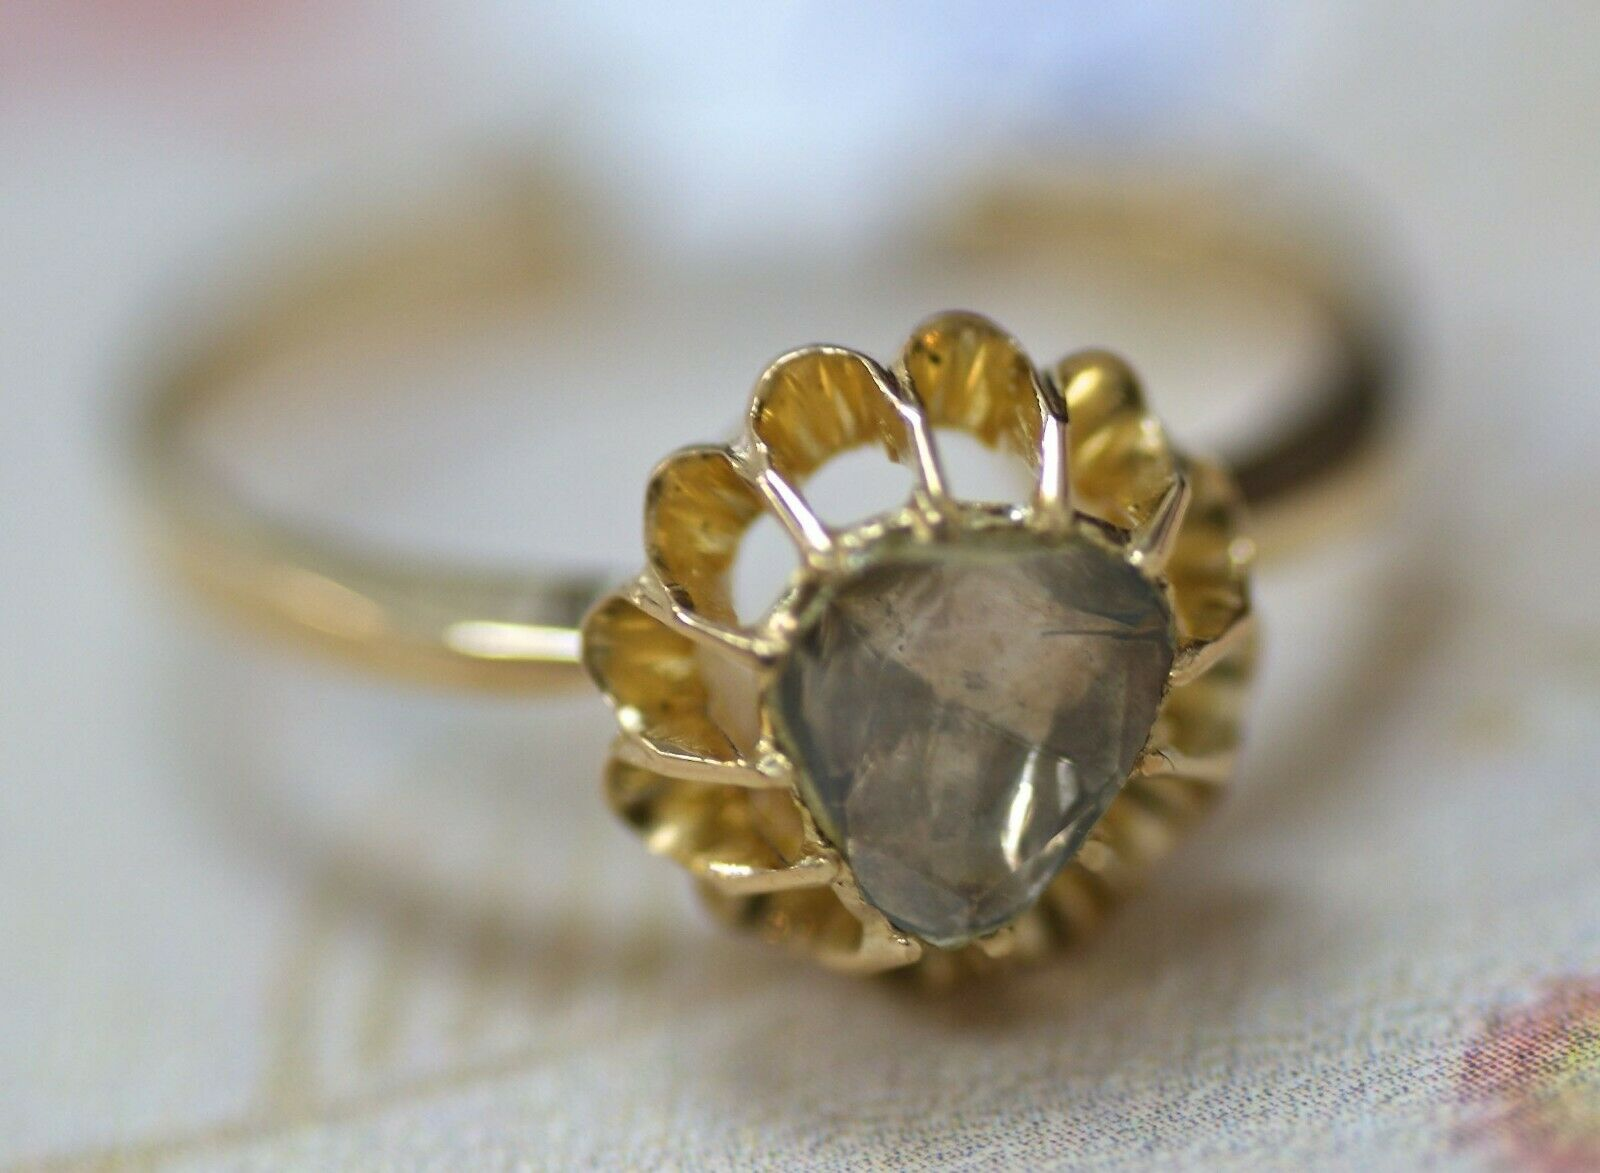 Classic 14K yellow gold ring with a diamond, Size - 8, signed